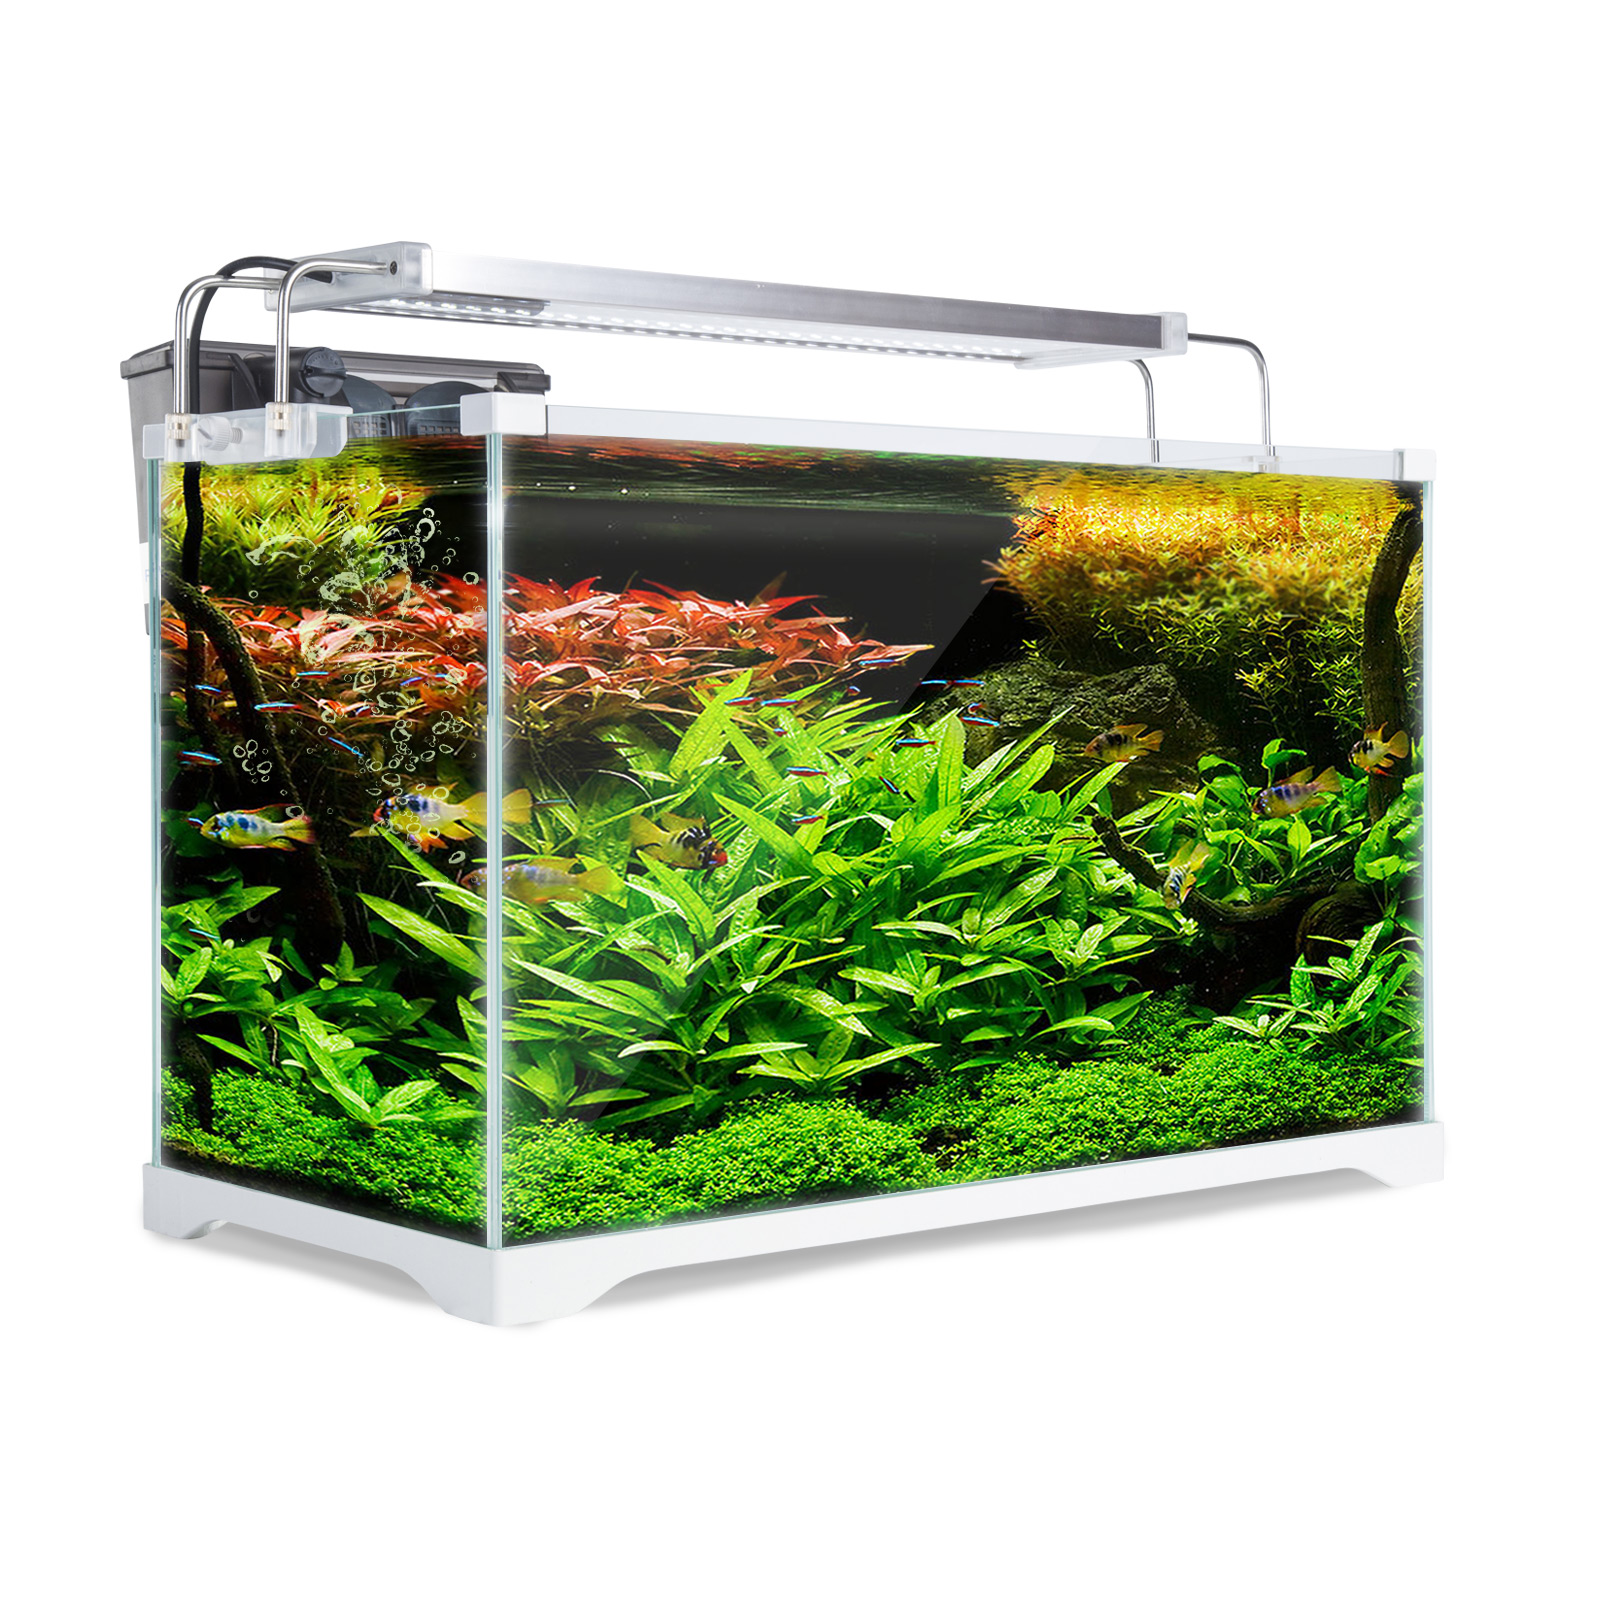 Aquarium Starfire Glass Aquarium Fish Tank 39L